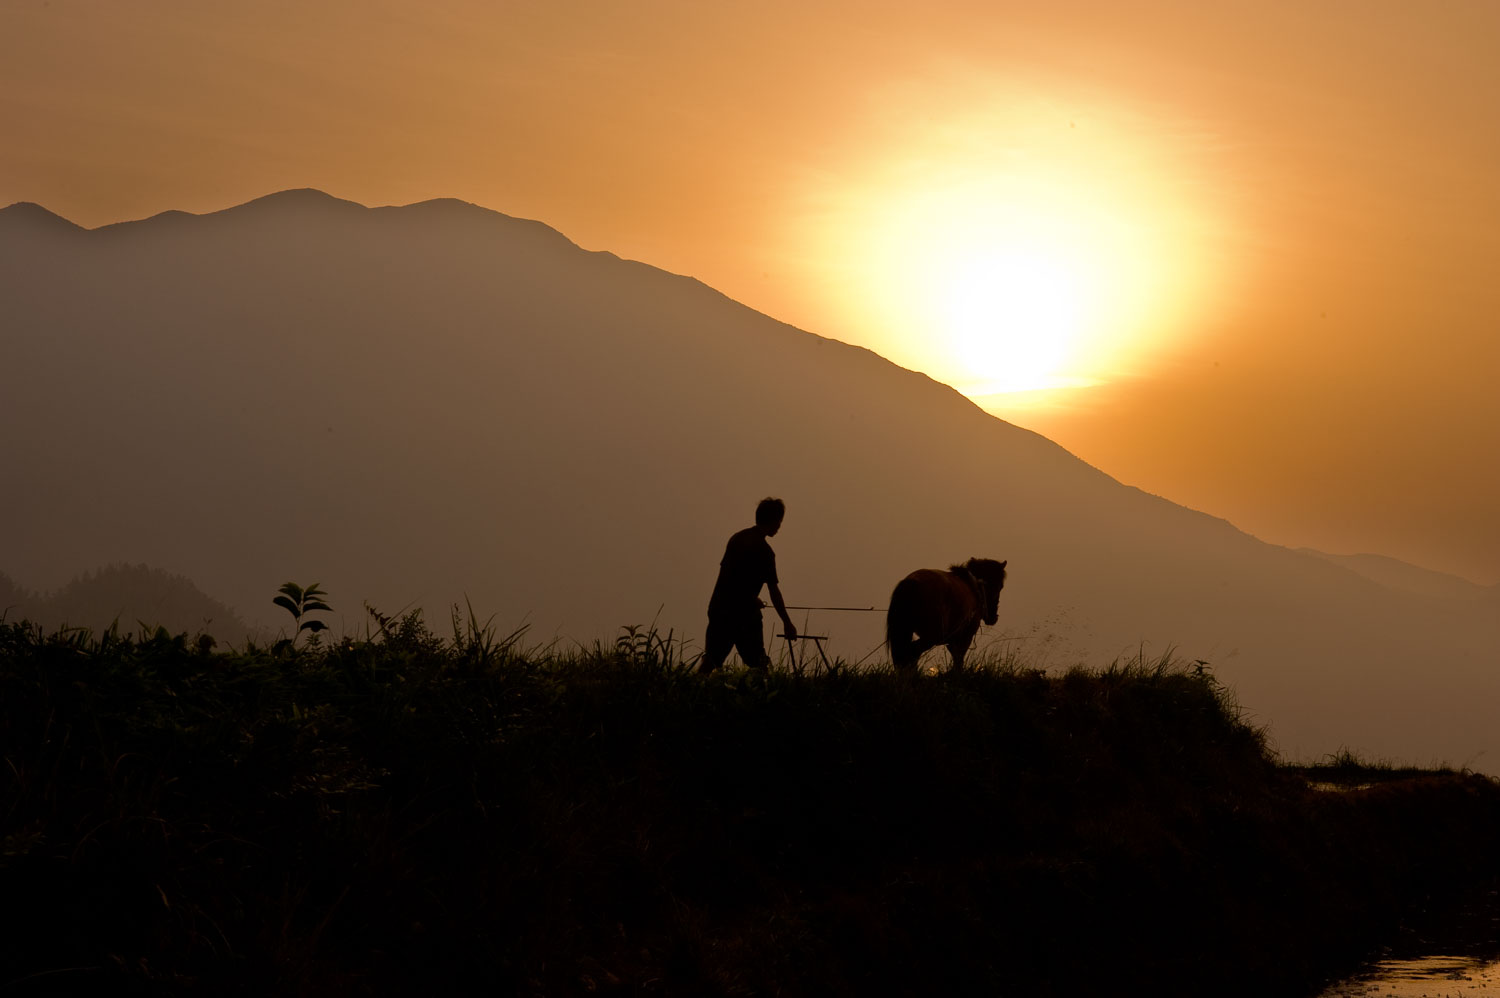 Man with Plow and Horse working in a rice terrace, Dazhai, China